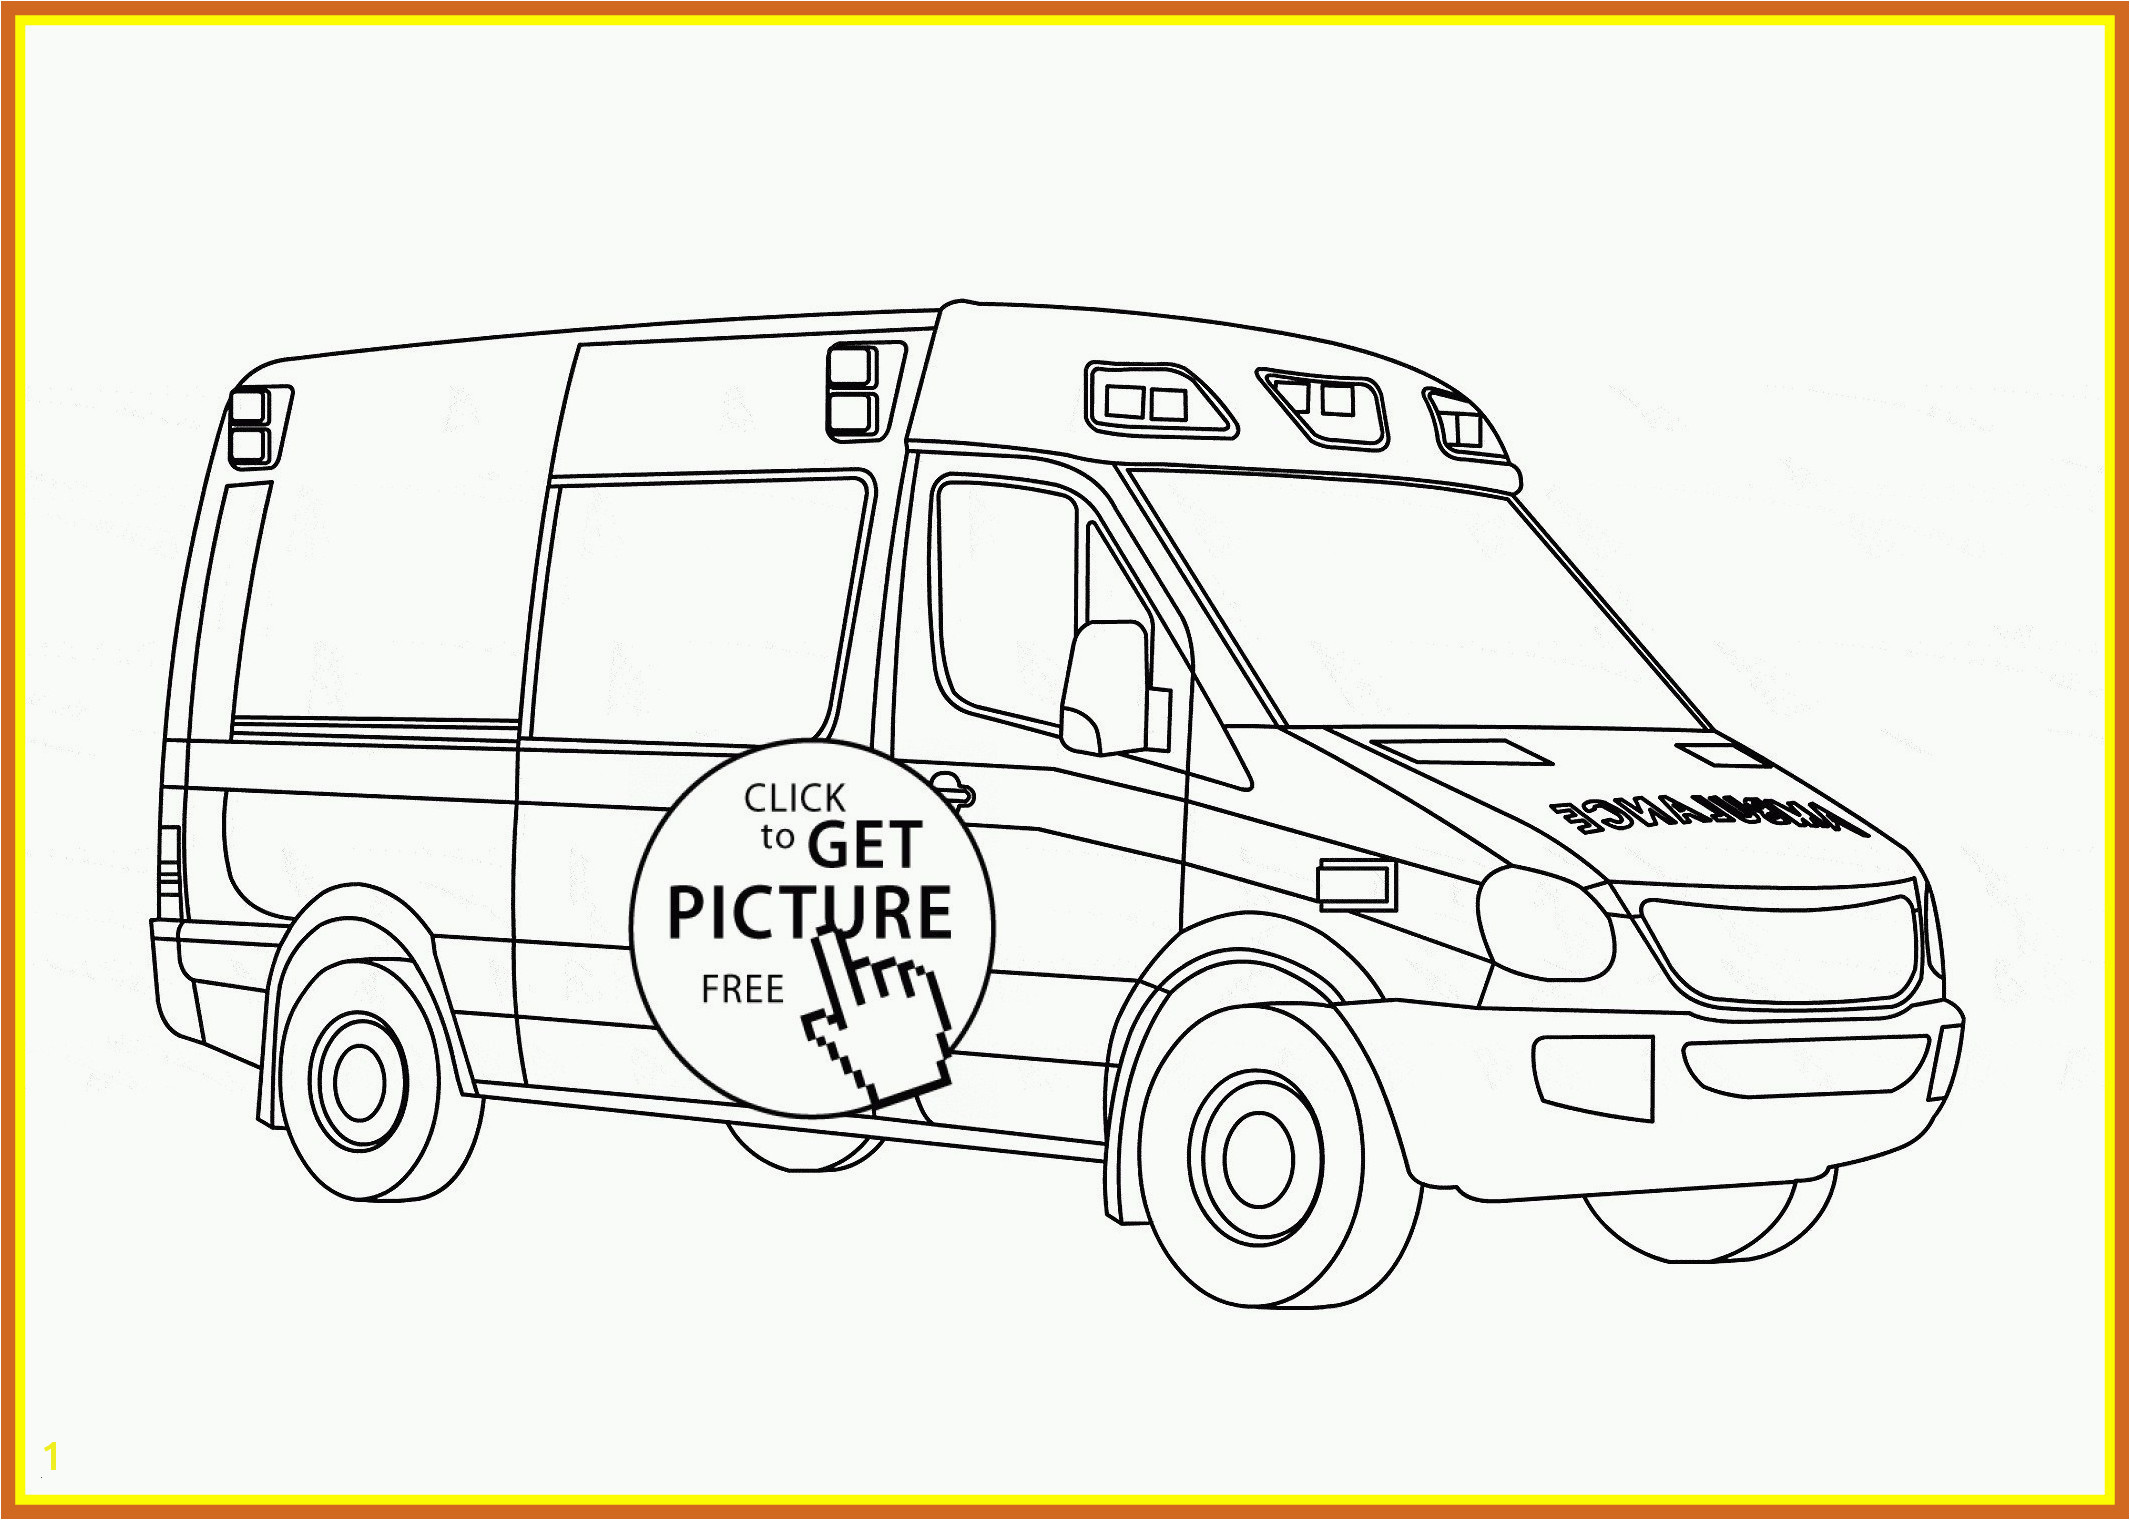 Swat Team Coloring Pages Police Car Coloring Pages Unique astonishing Police Car Coloring